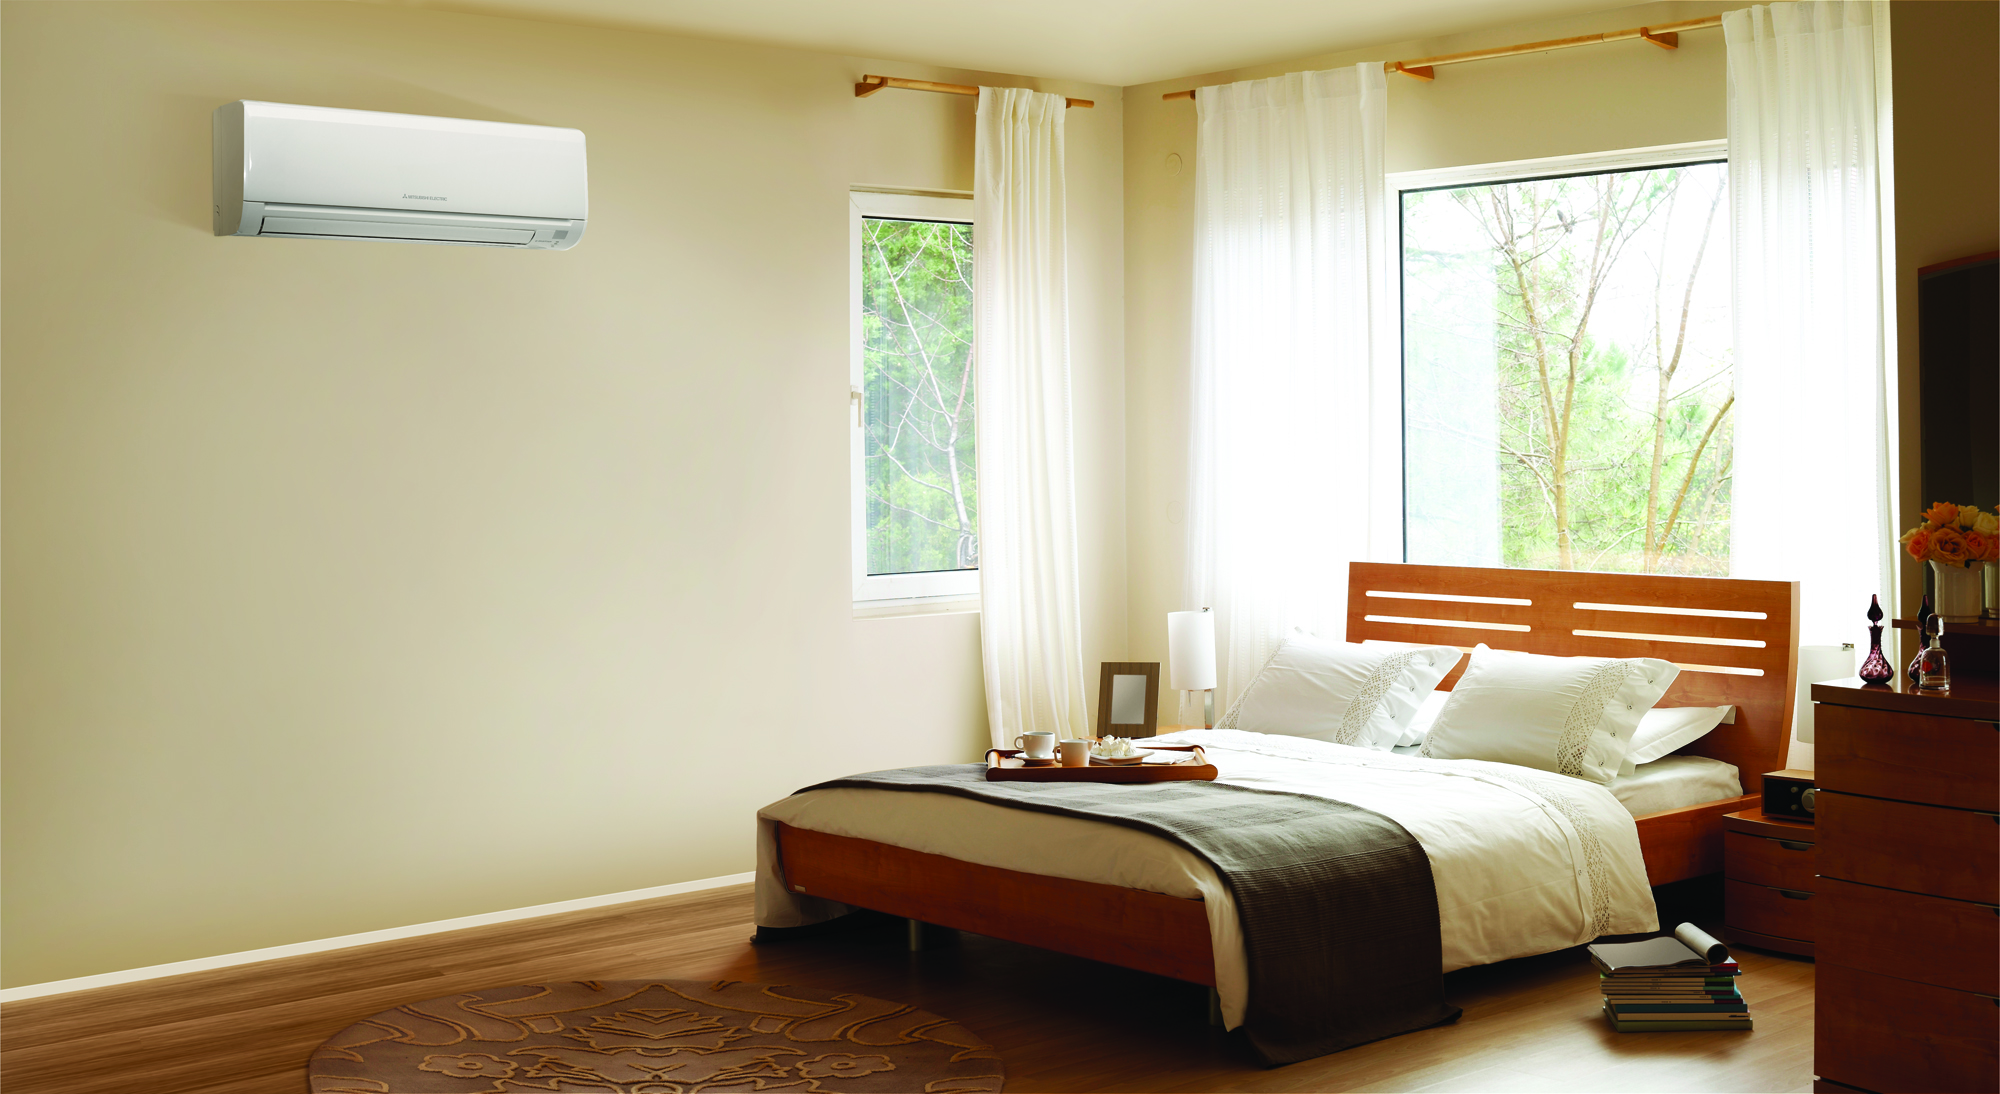 Air conditioner for bedroom ac coolers devices - Bedroom air conditioner ...